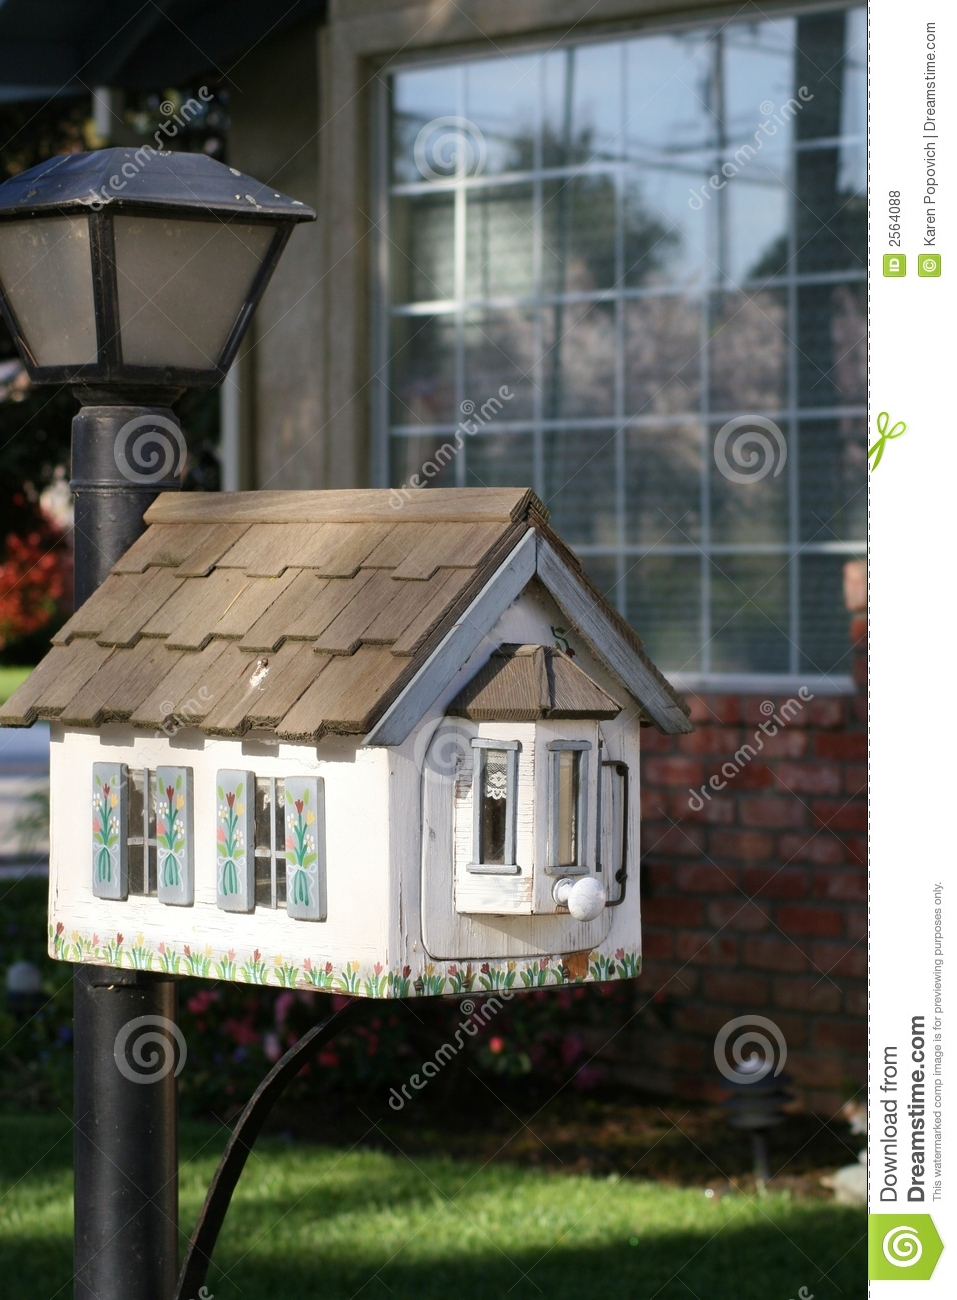 Letter Lamp Little House Mailbox Stock Photo. Image Of Mailbox, Little